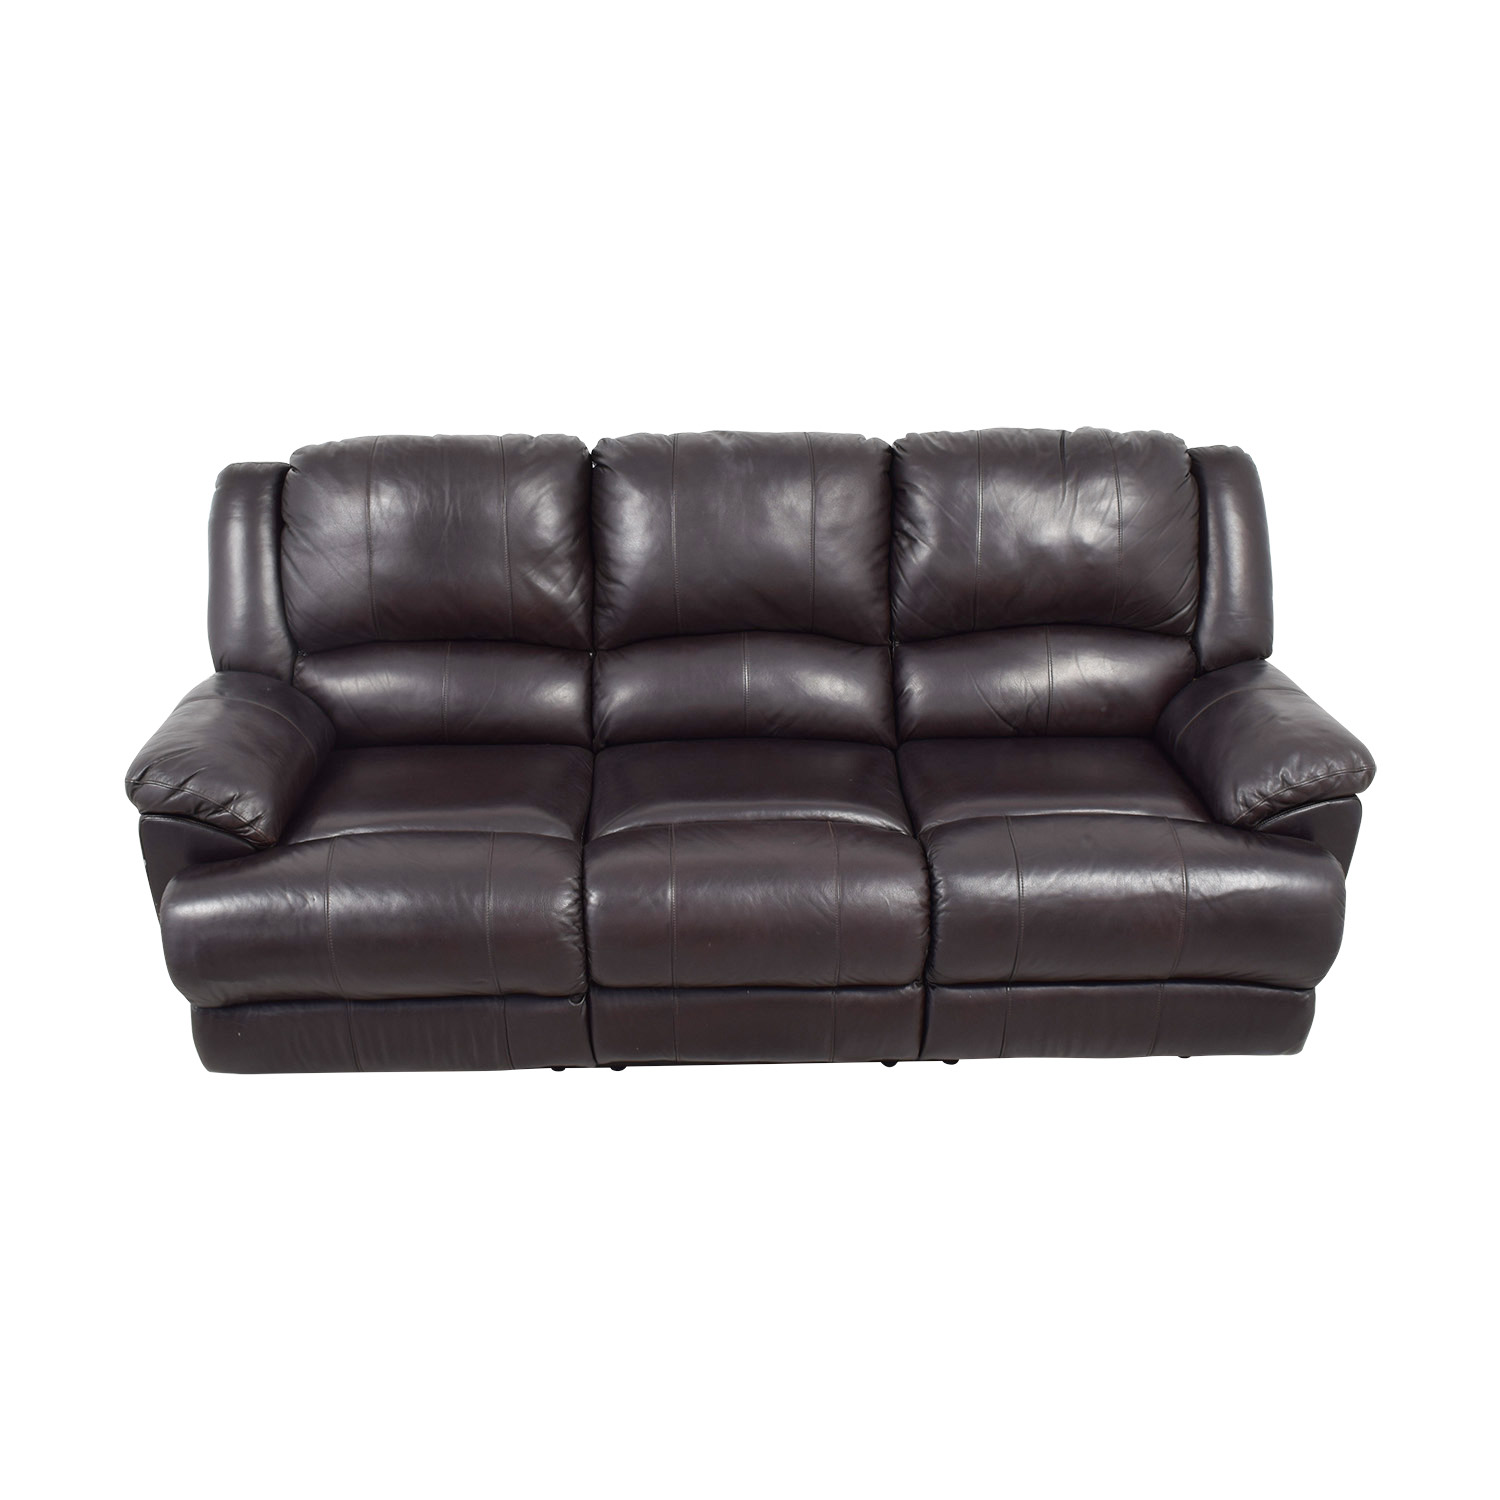 Ashley Furniture Ashley Furniture Black Leather Reclining Couch on sale